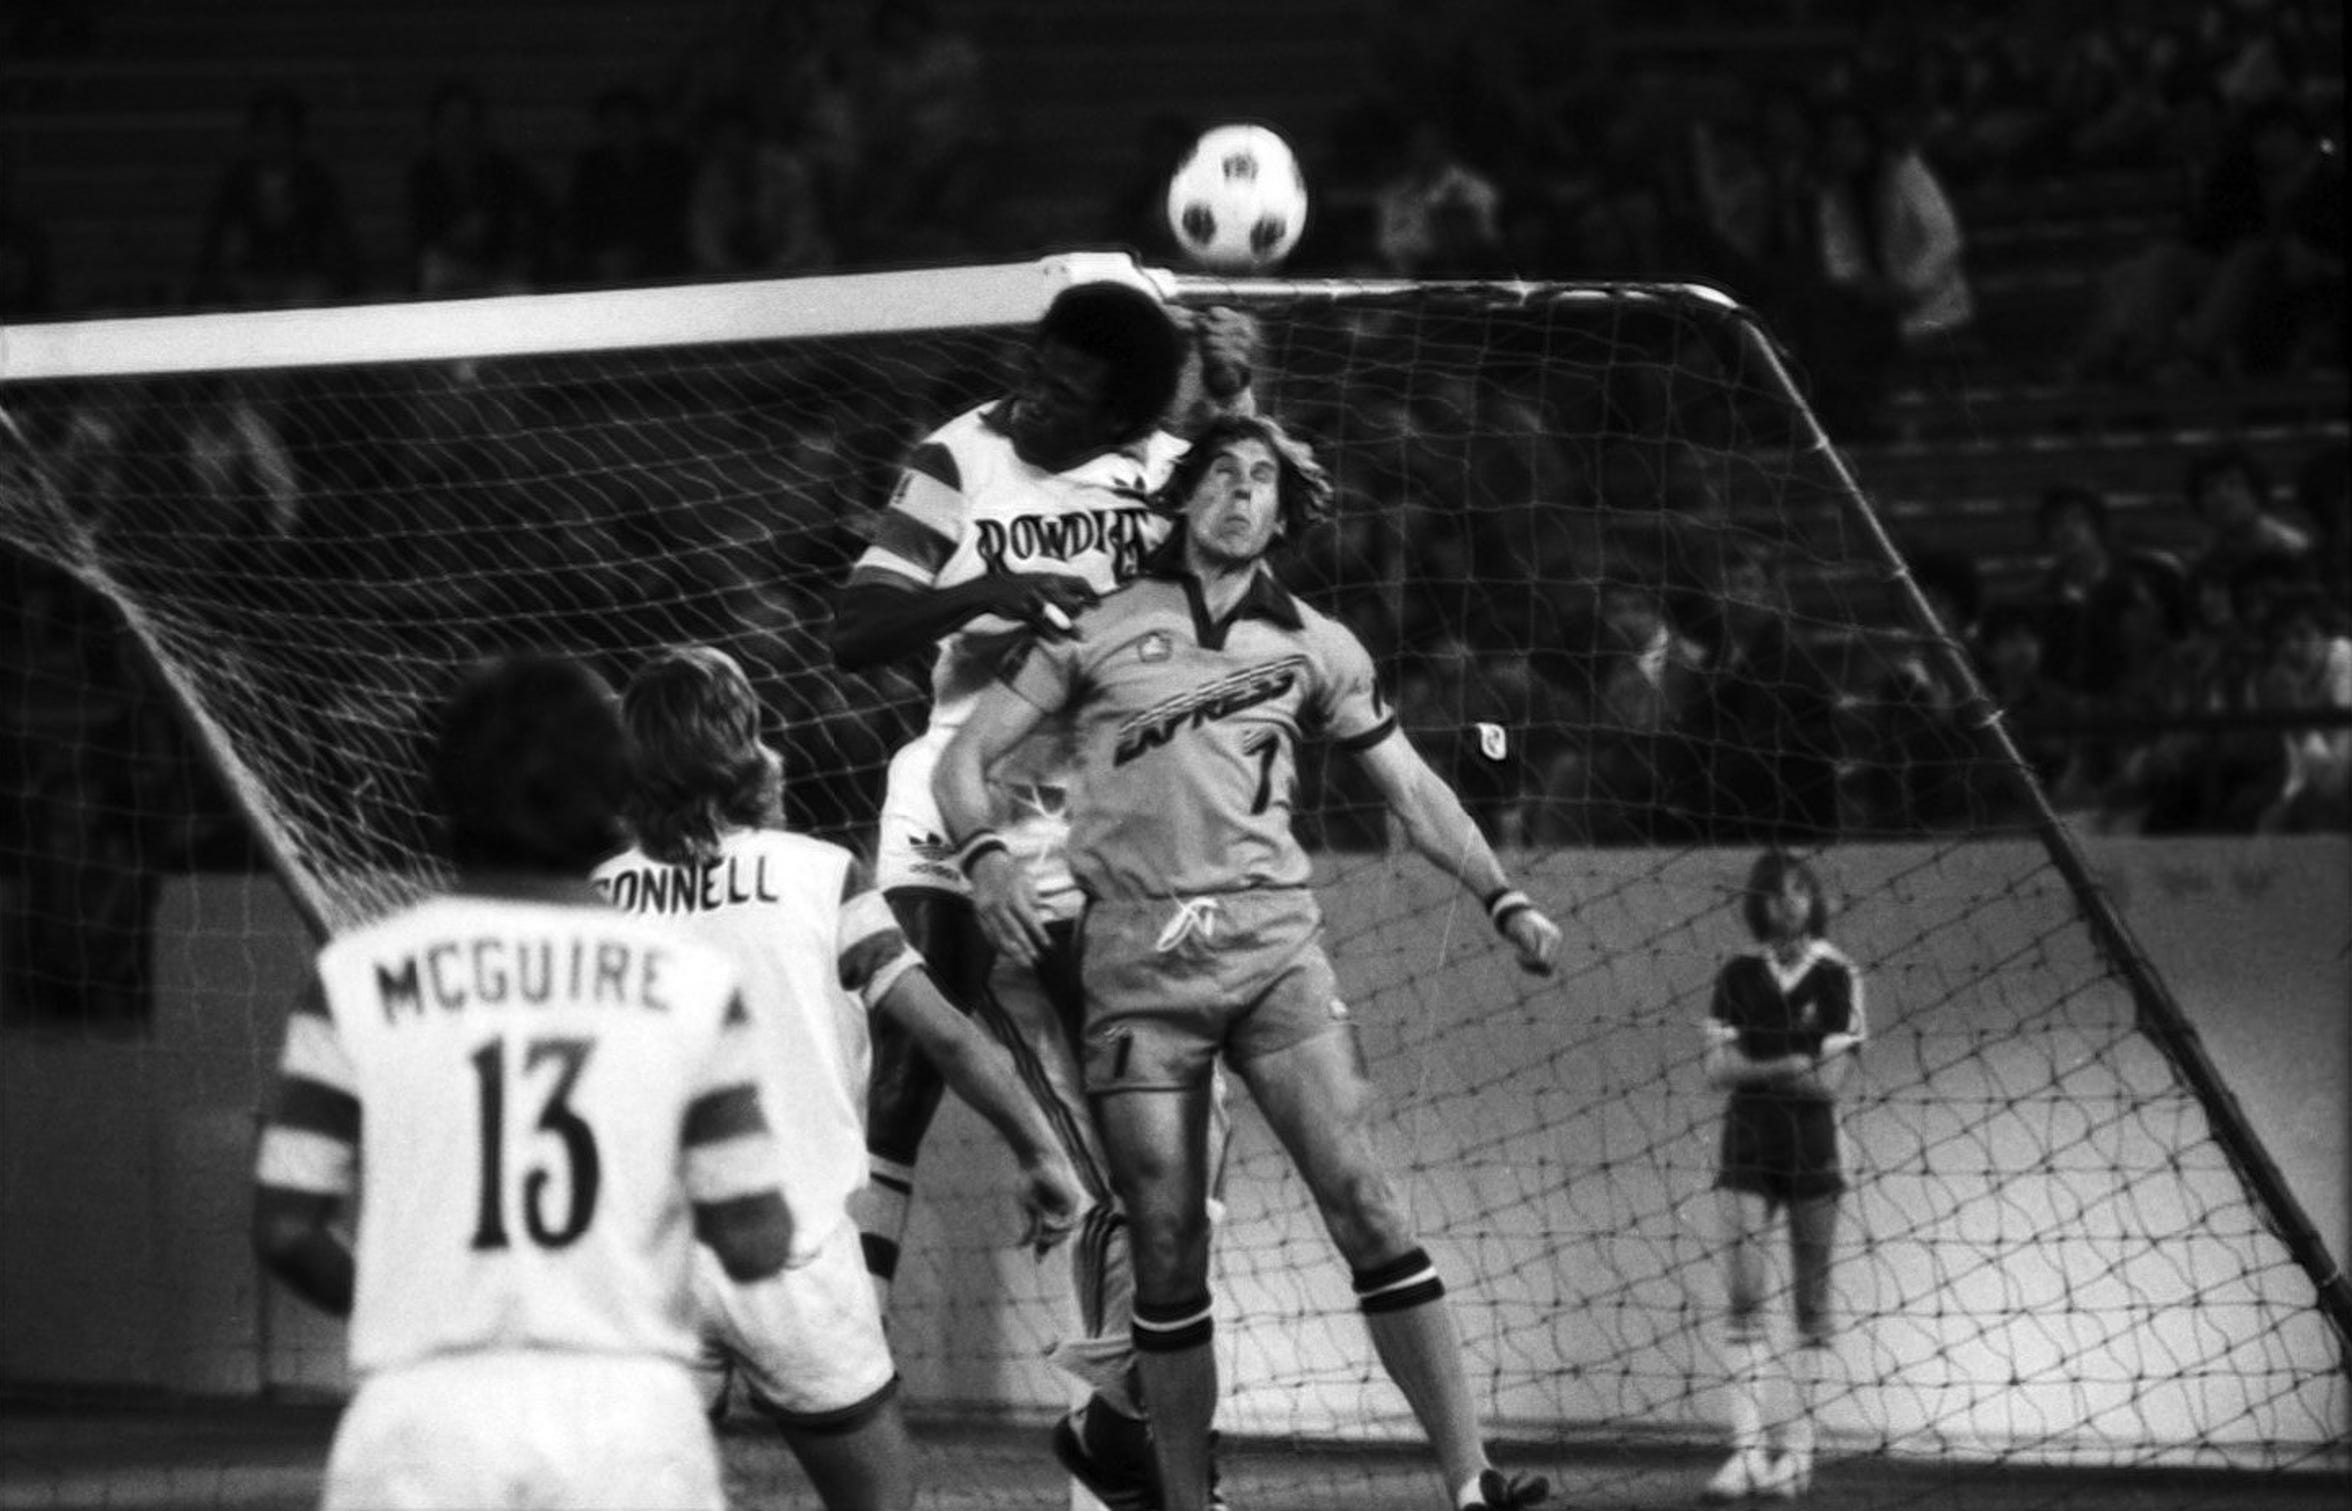 Detroit Express forward Mick Leach battles Tampa Bay Rowdies defender Arsene Auguste for an aerial ball on opening night before 28,523 spectators on April 16, 1978 at the Pontiac Silverdome.